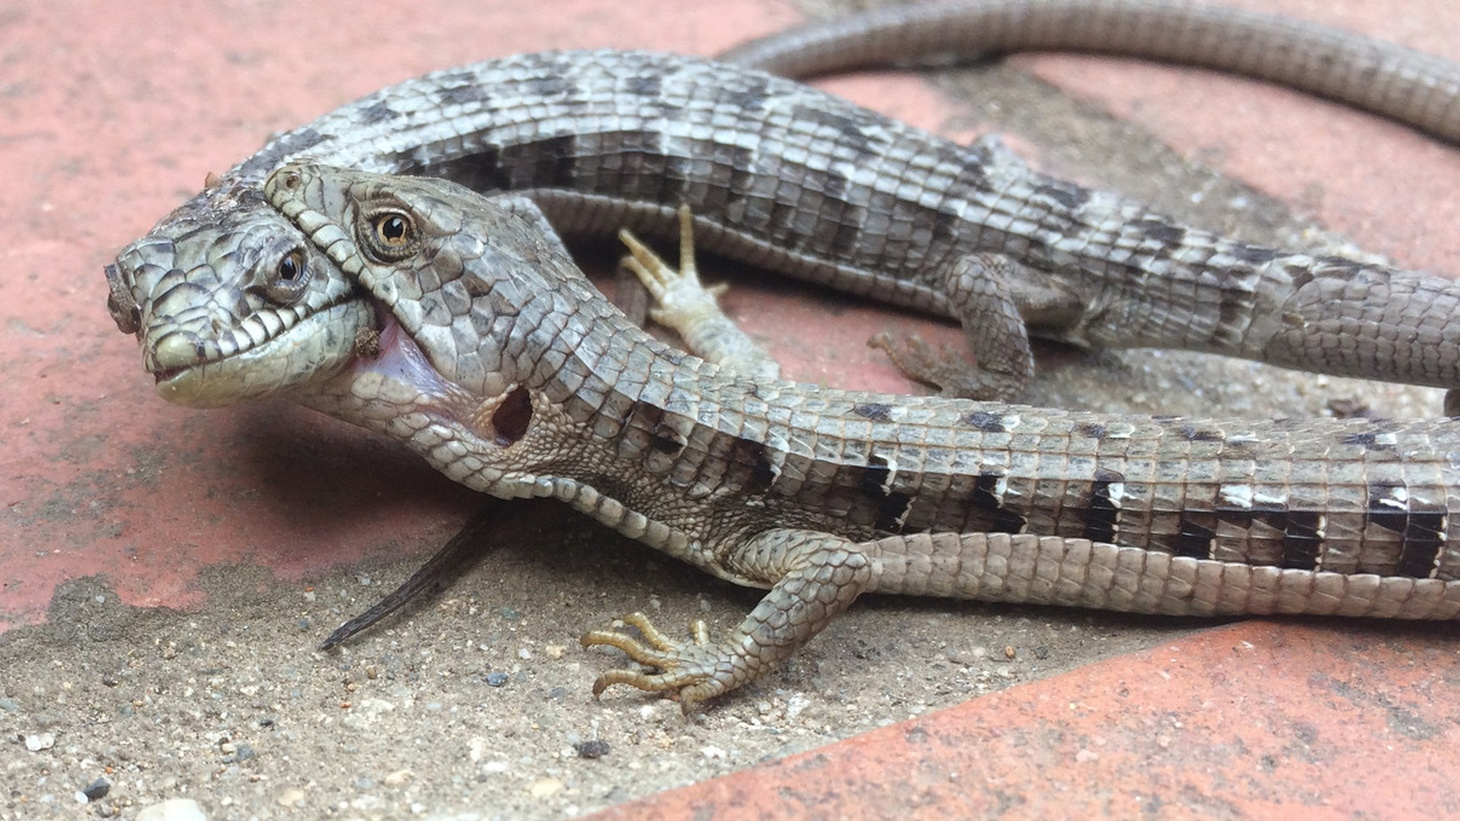 Mary Stein found these alligator lizards in a backyard in the town of Avalon on Catalina Island. When first found, there was a second male trying to interrupt these two but he wandered off.